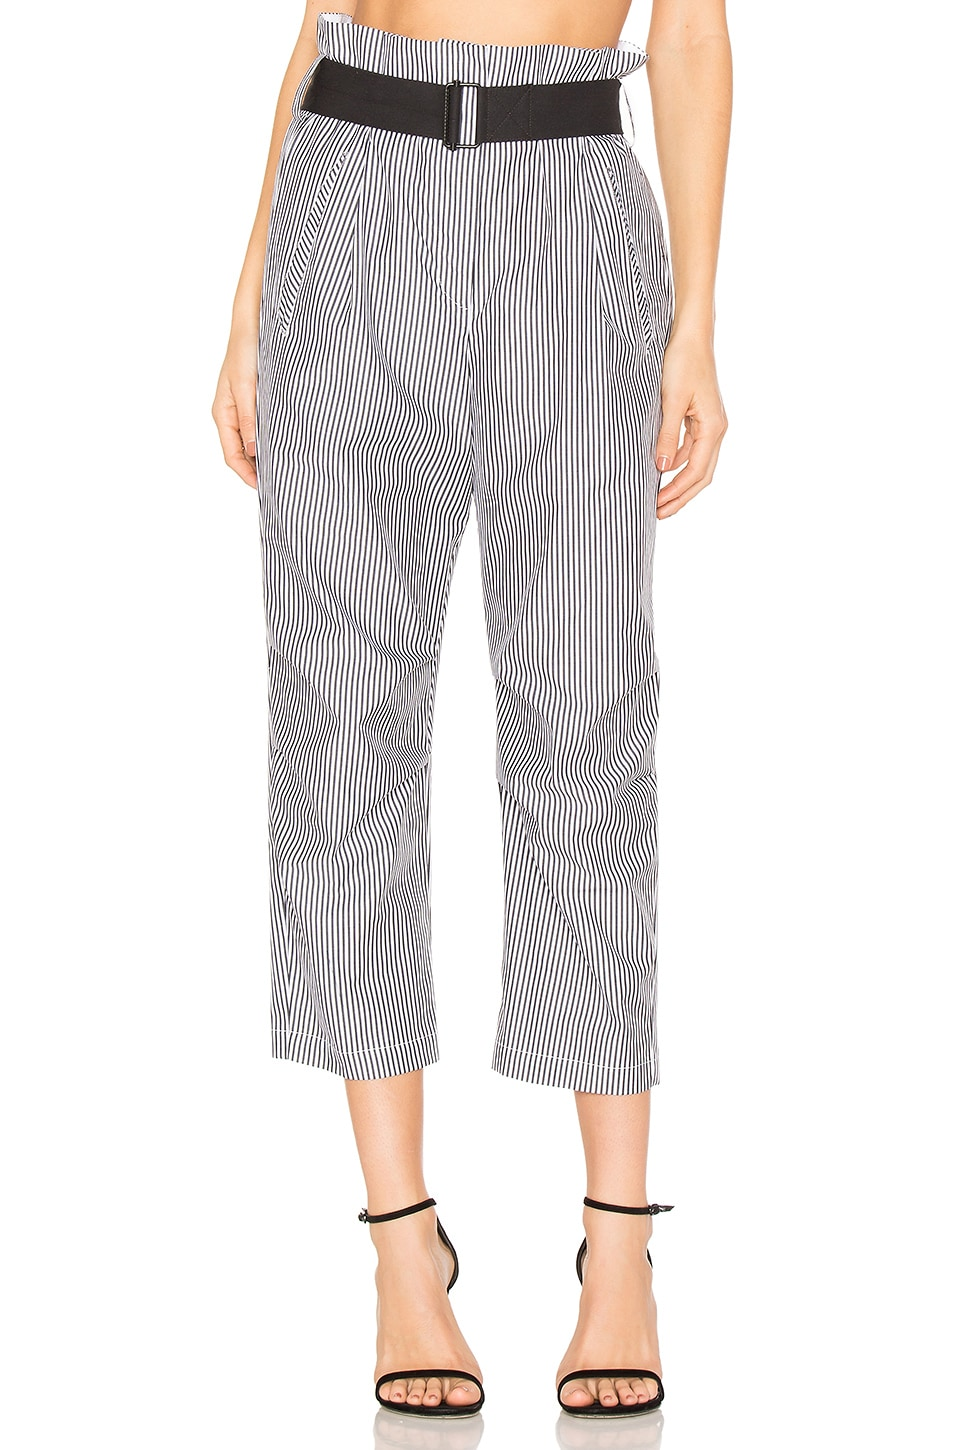 Rag & Bone Bosworth Pant in Black Stripe